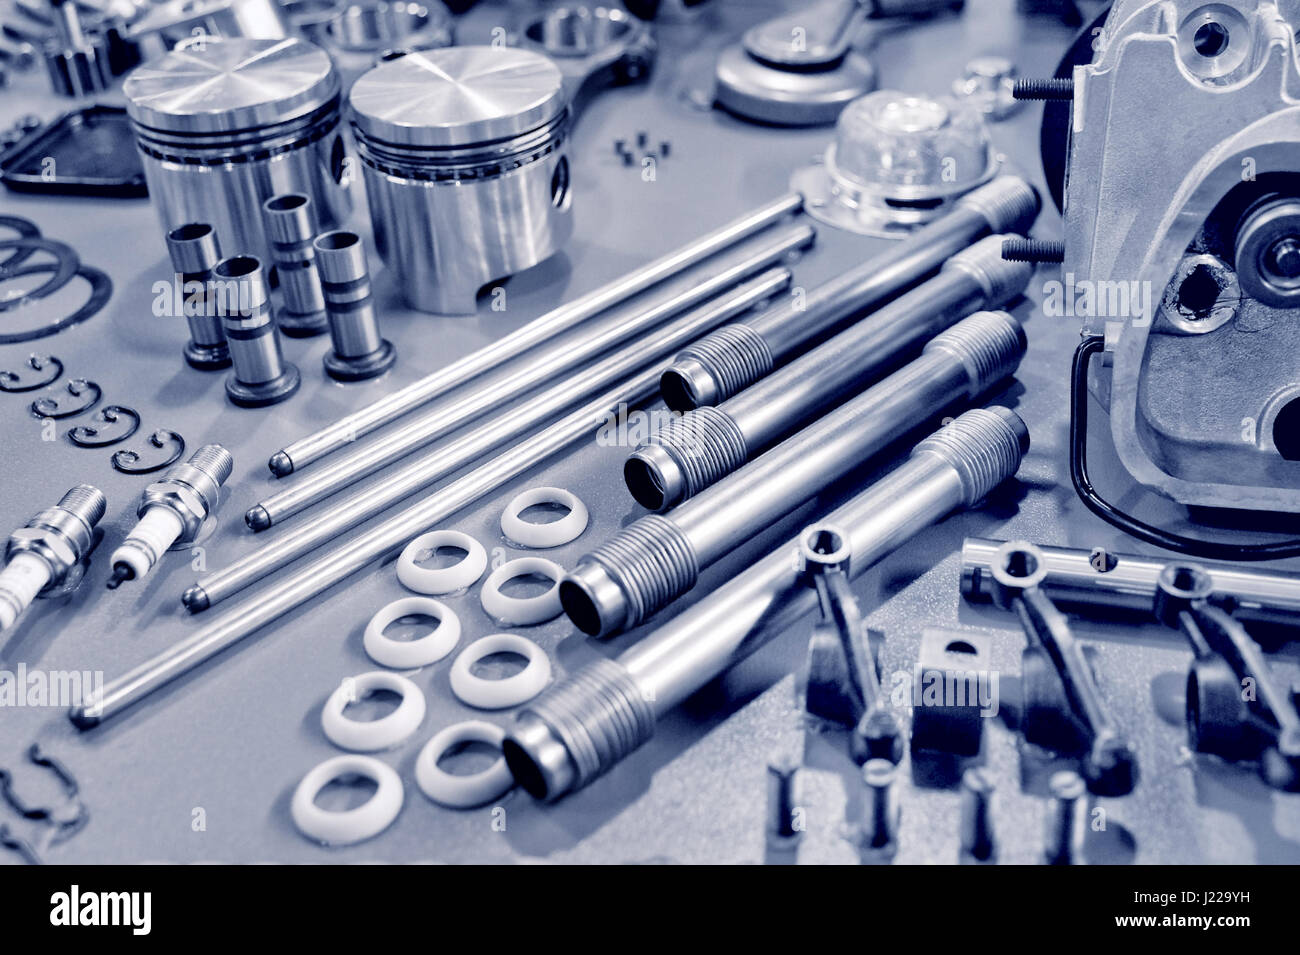 Blue toned collection of vehicle engine parts stock image